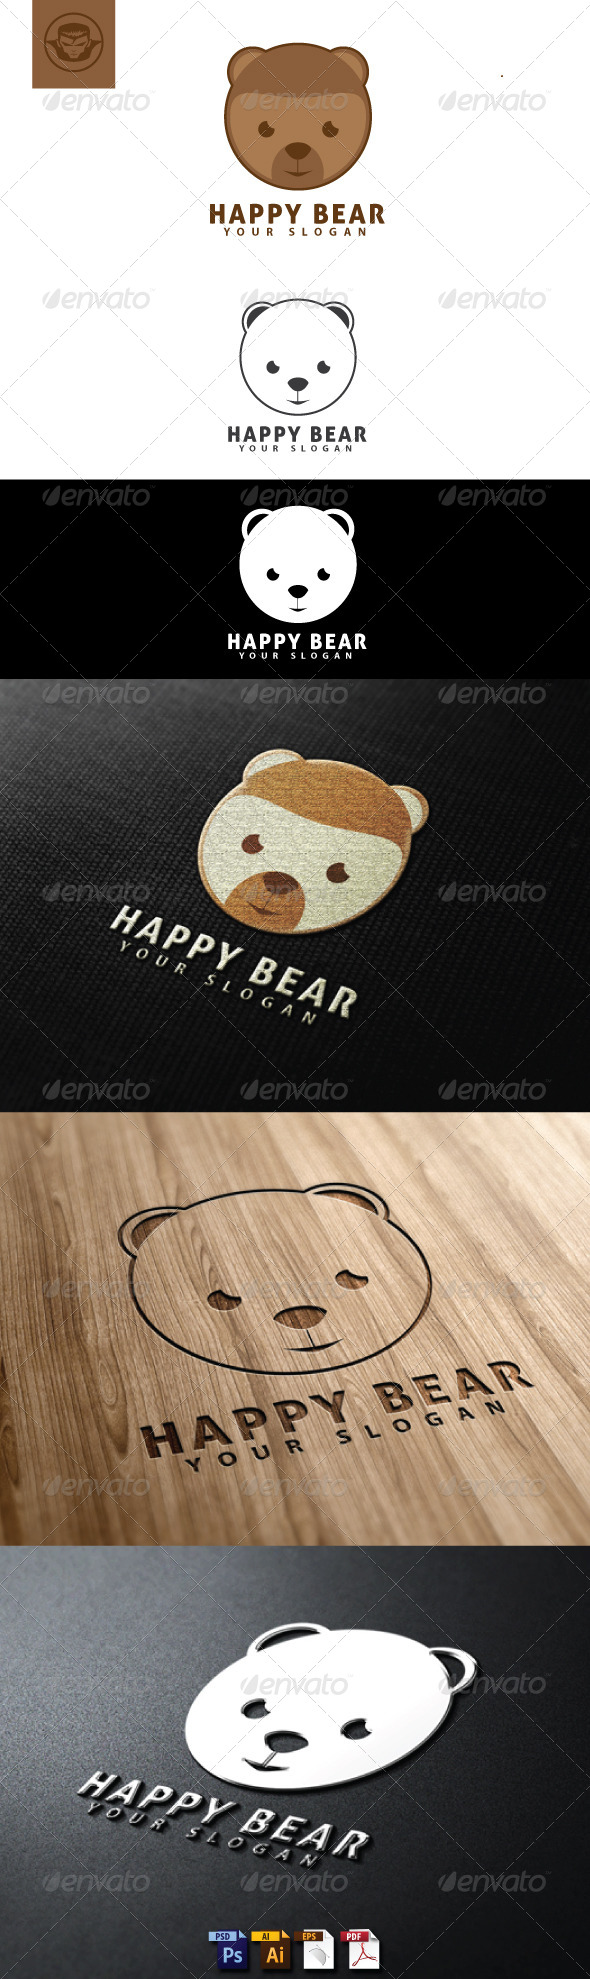 GraphicRiver Happy Bear Logo Template 4818438